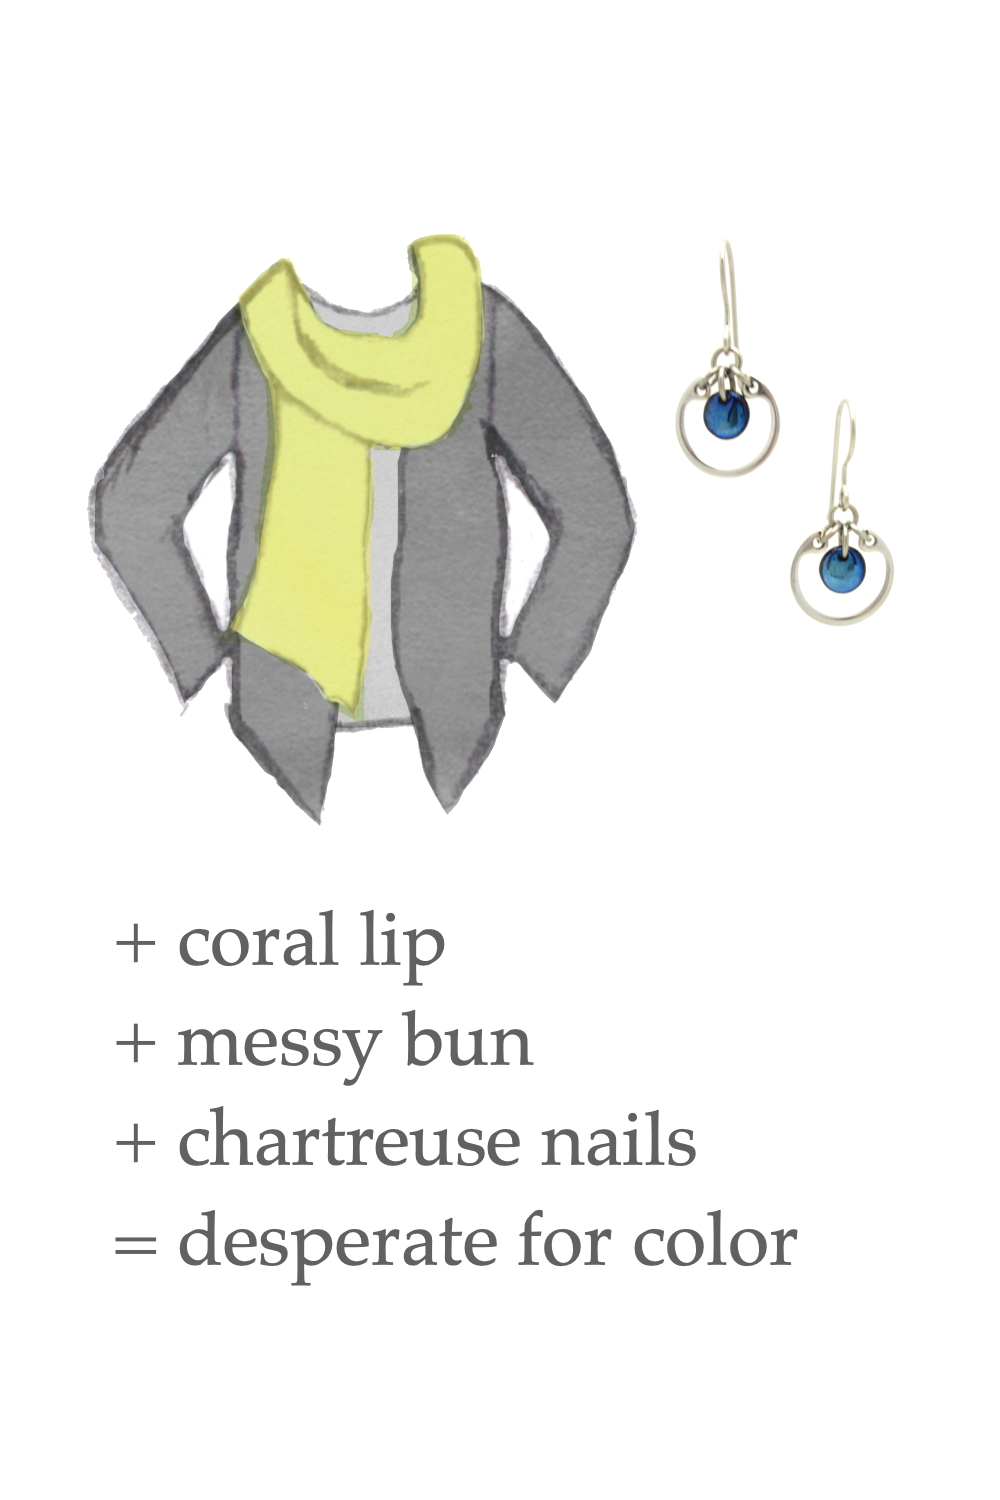 Style sketch of an outfit idea, with a light gray tee, chartreuse green scarf, & dark grey cardigan, with Wraptillion's small modern circle earrings in navy. Text on image reads: + coral lip + messy bun + chartreuse nails = desperate for color.